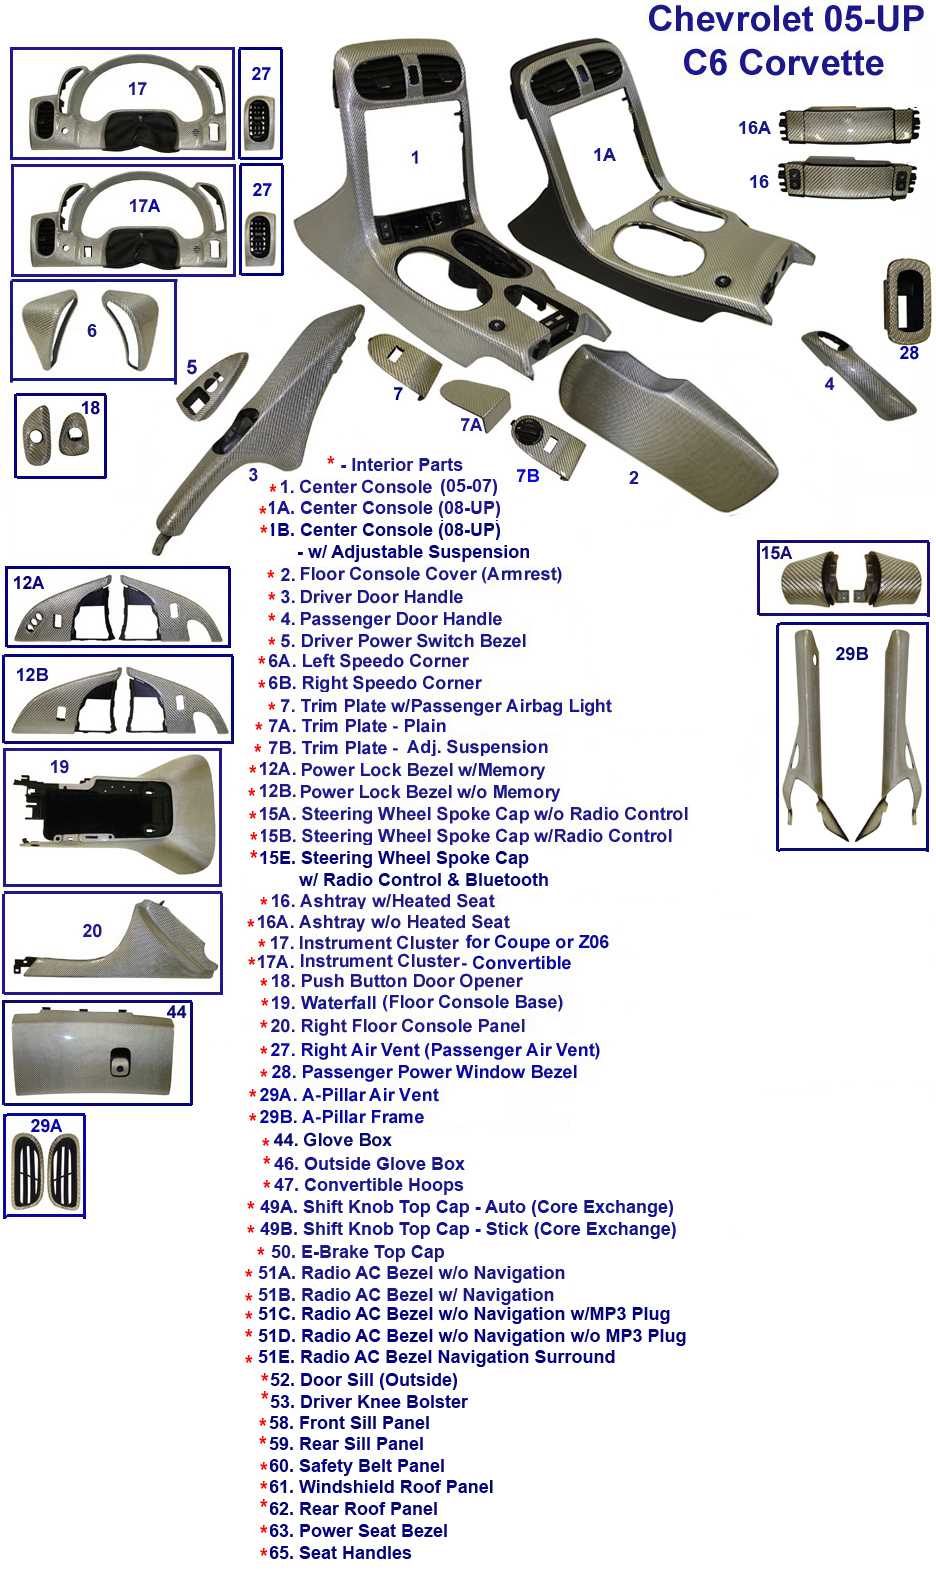 C6 Corvette Silver  CF - Diagram - Interior - 768